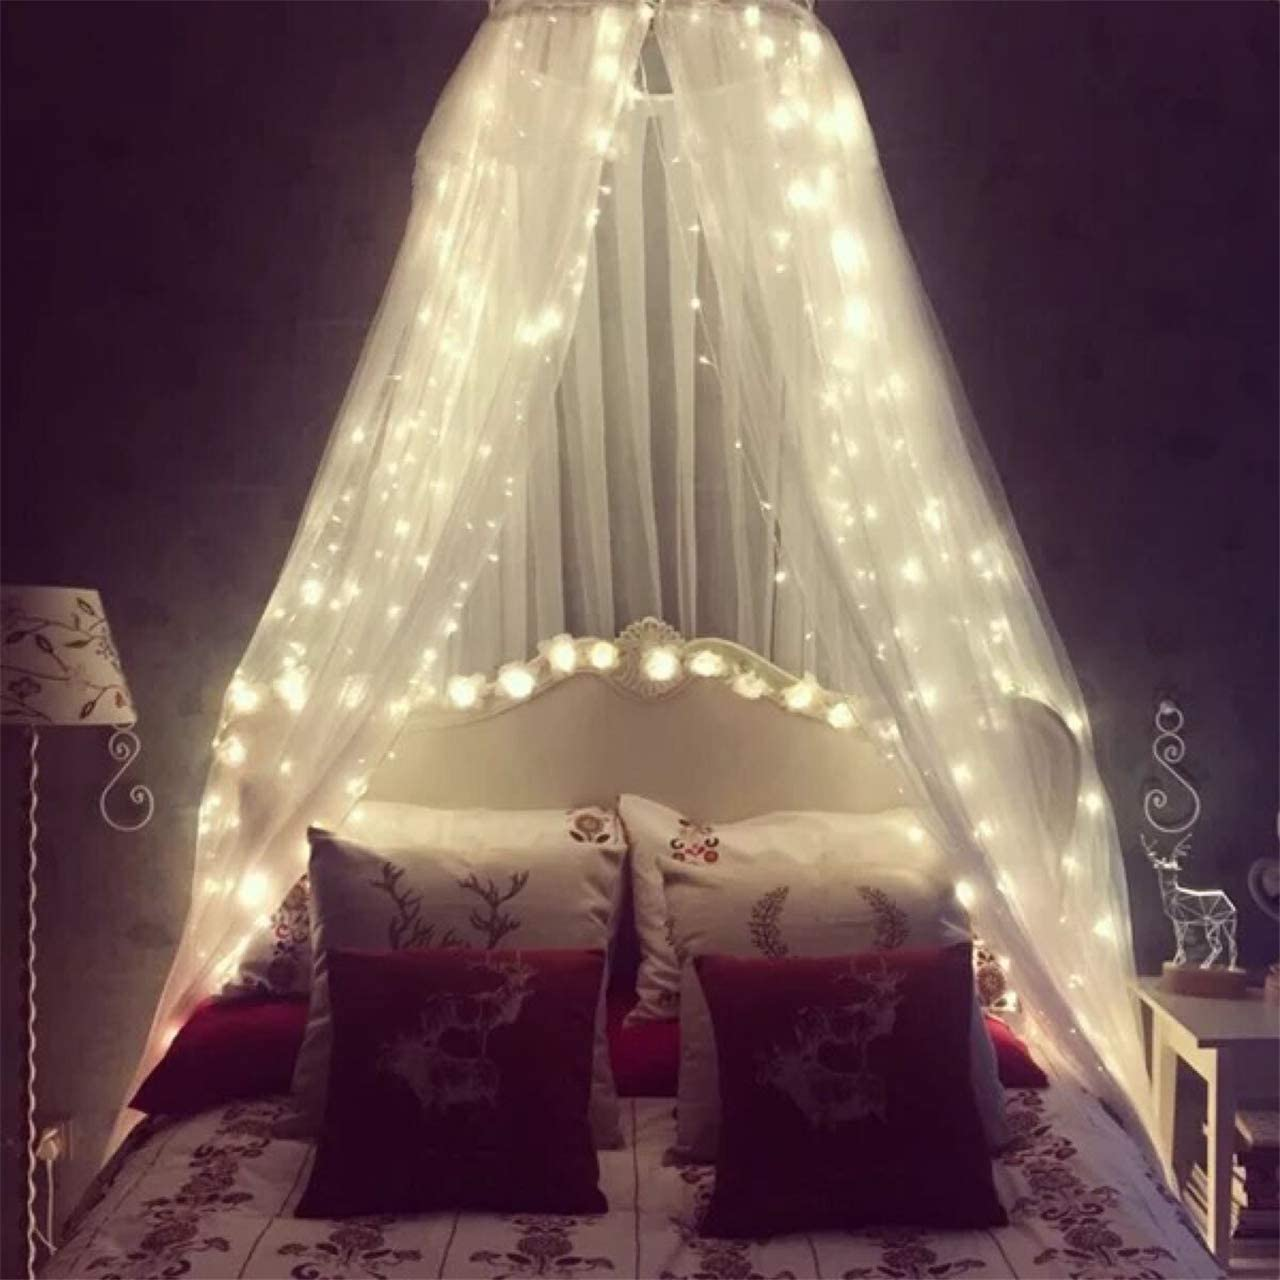 Mosquito Net for Bed, Bed Canopy with 100 led String Lights, Ultra Large Hanging Queen Canopy Bed Curtain Netting for Baby, Kids, Girls Or Adults. 1 Entry,for Single to King Size Beds | Camping: Home & Kitchen